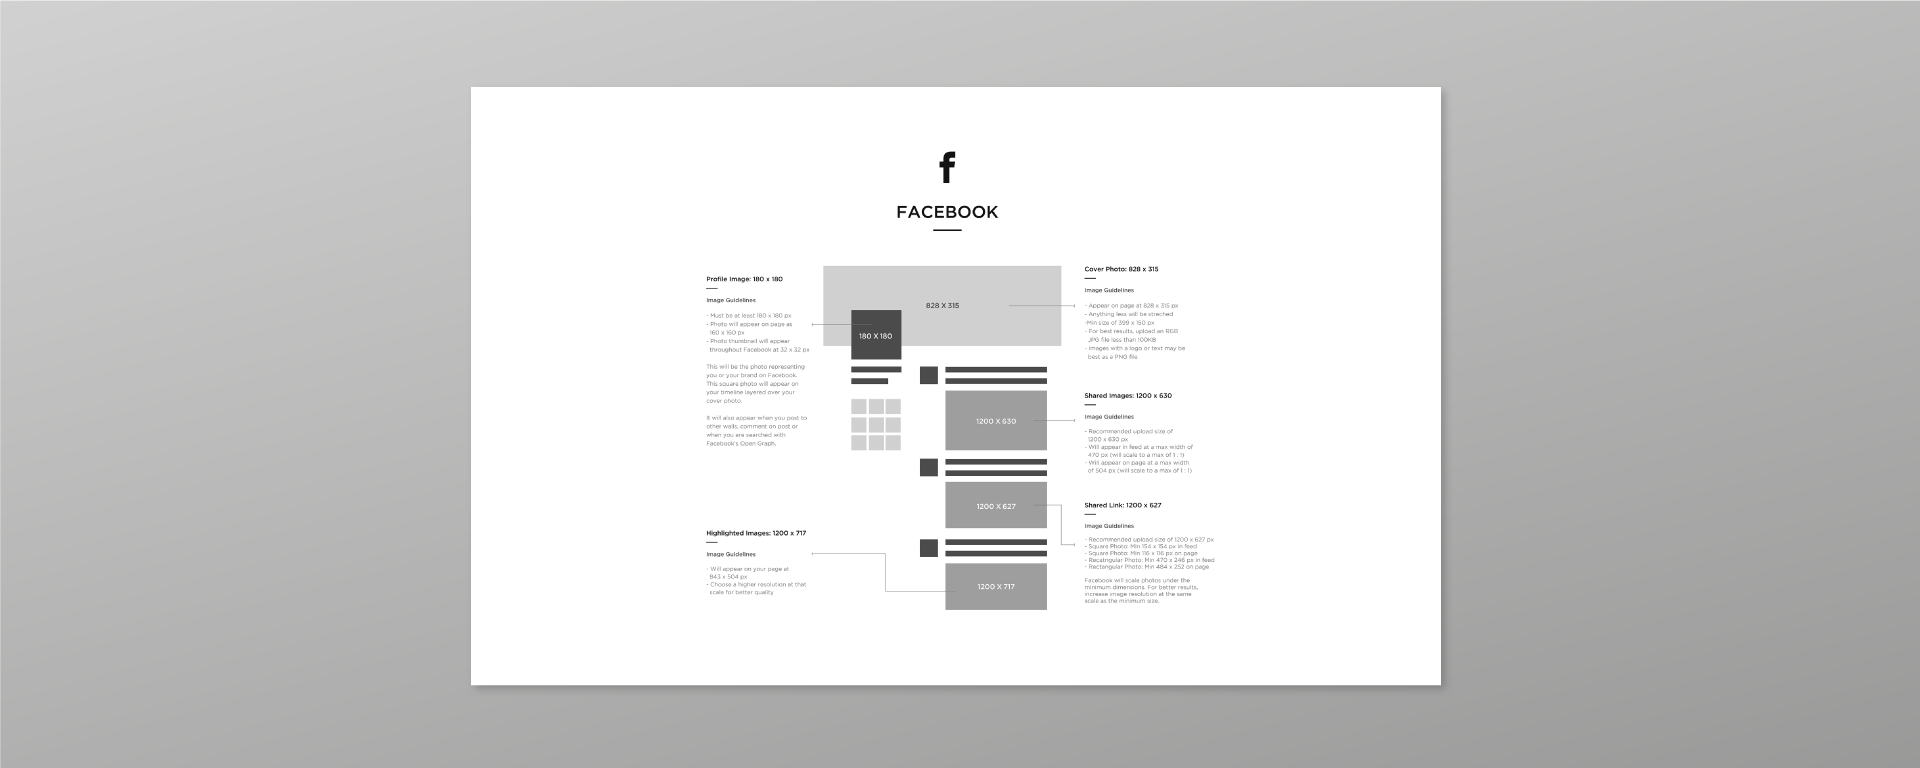 Nilead design management facebook guidelines